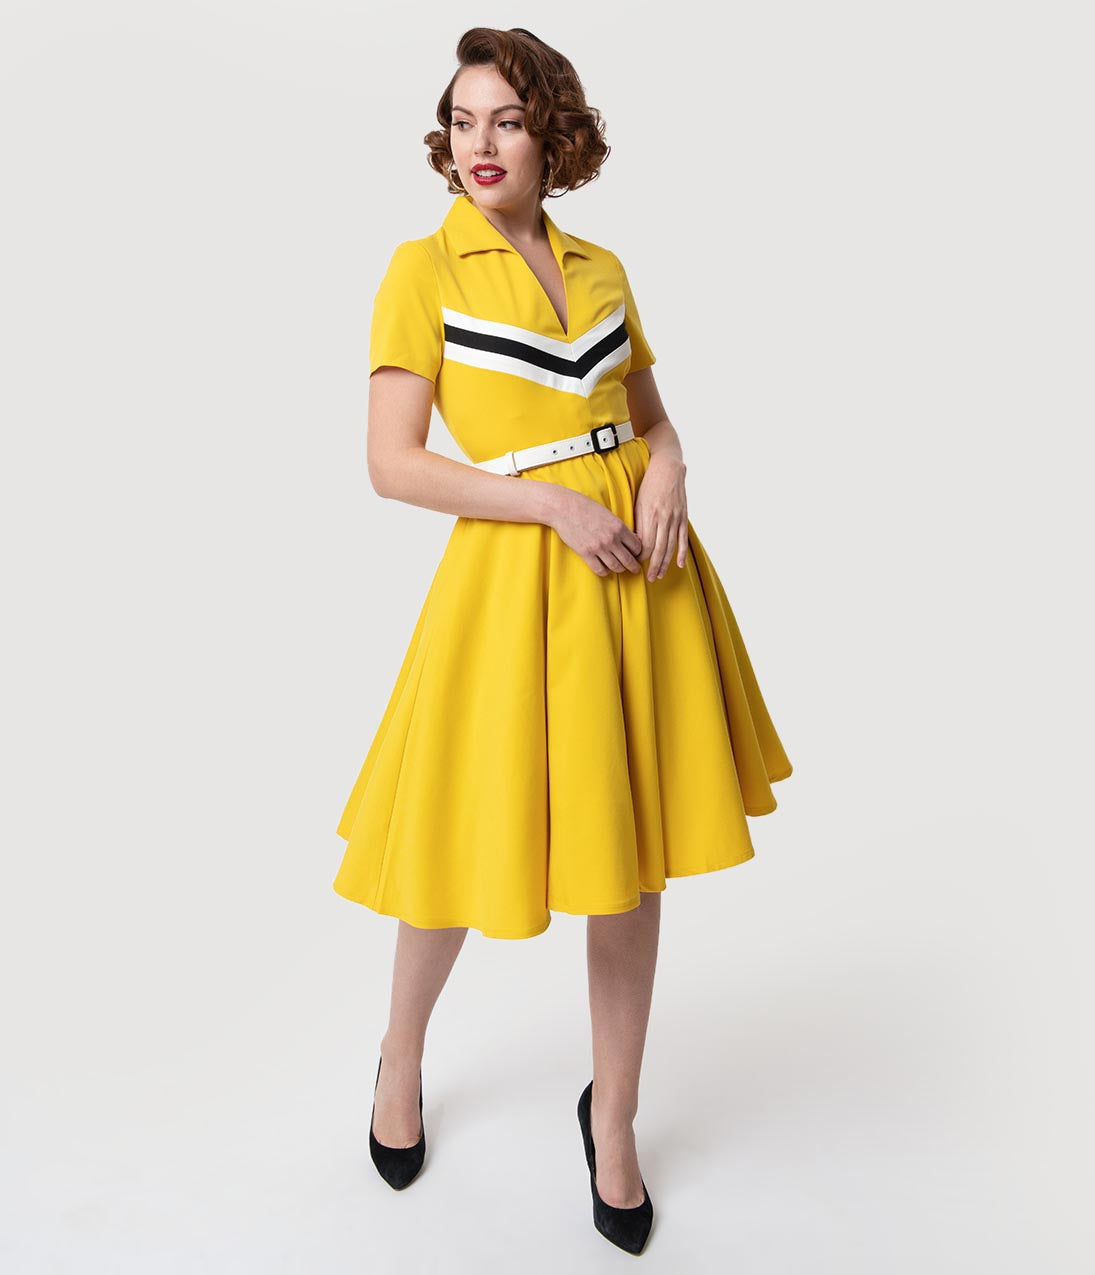 1960s Dresses | 60s Dresses Mod, Mini, Jackie O, Hippie Glamour Bunny Yellow  Retro Stripes Short Sleeved June Swing Dress $132.00 AT vintagedancer.com